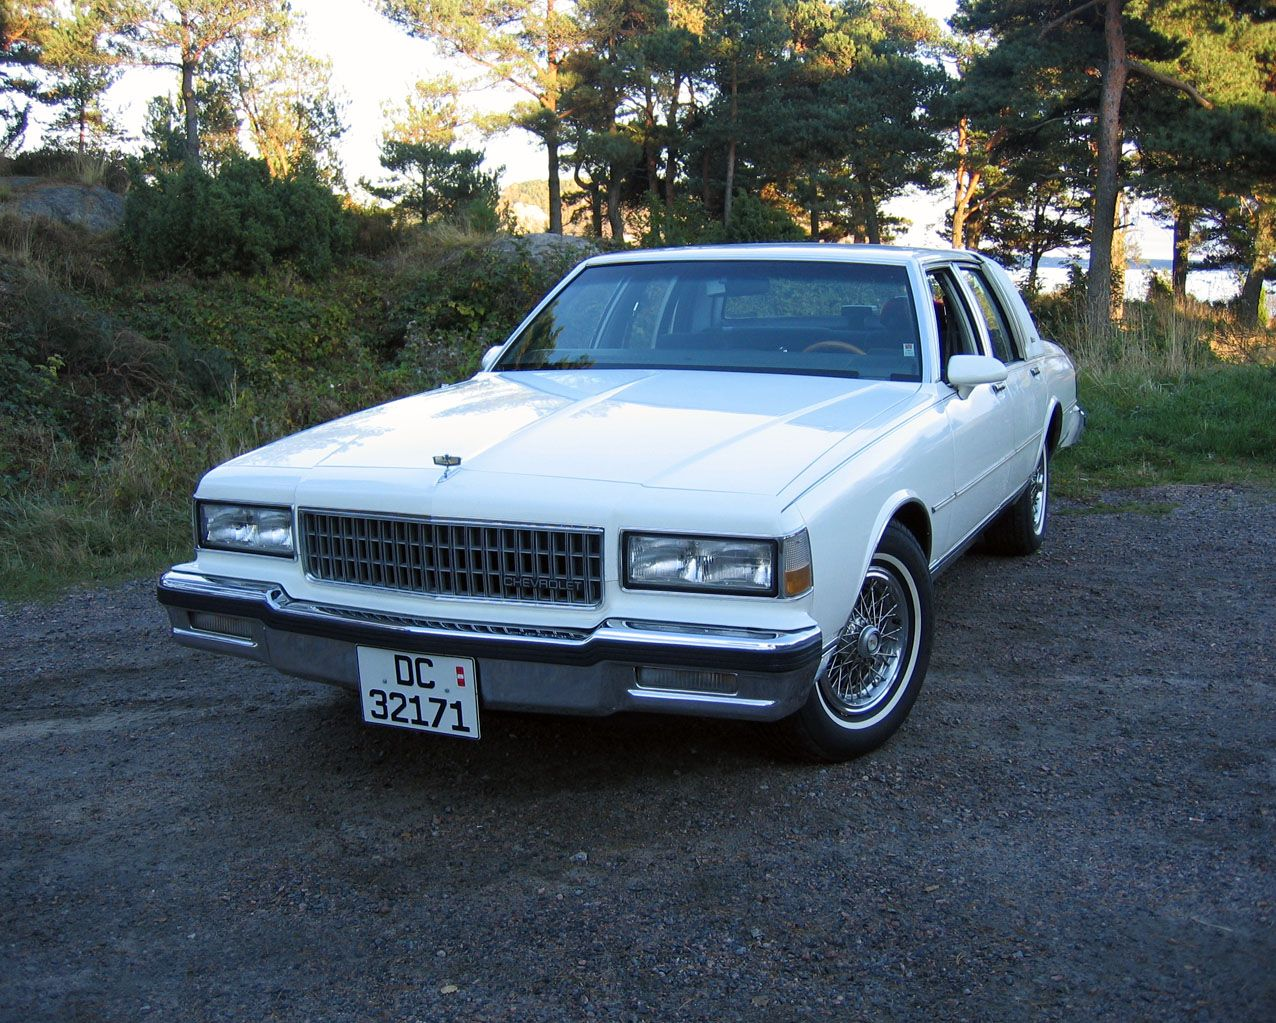 All Chevy 1987 chevrolet caprice classic brougham : Third generation 1989 | Chevrolet Caprice | Pinterest | Chevrolet ...